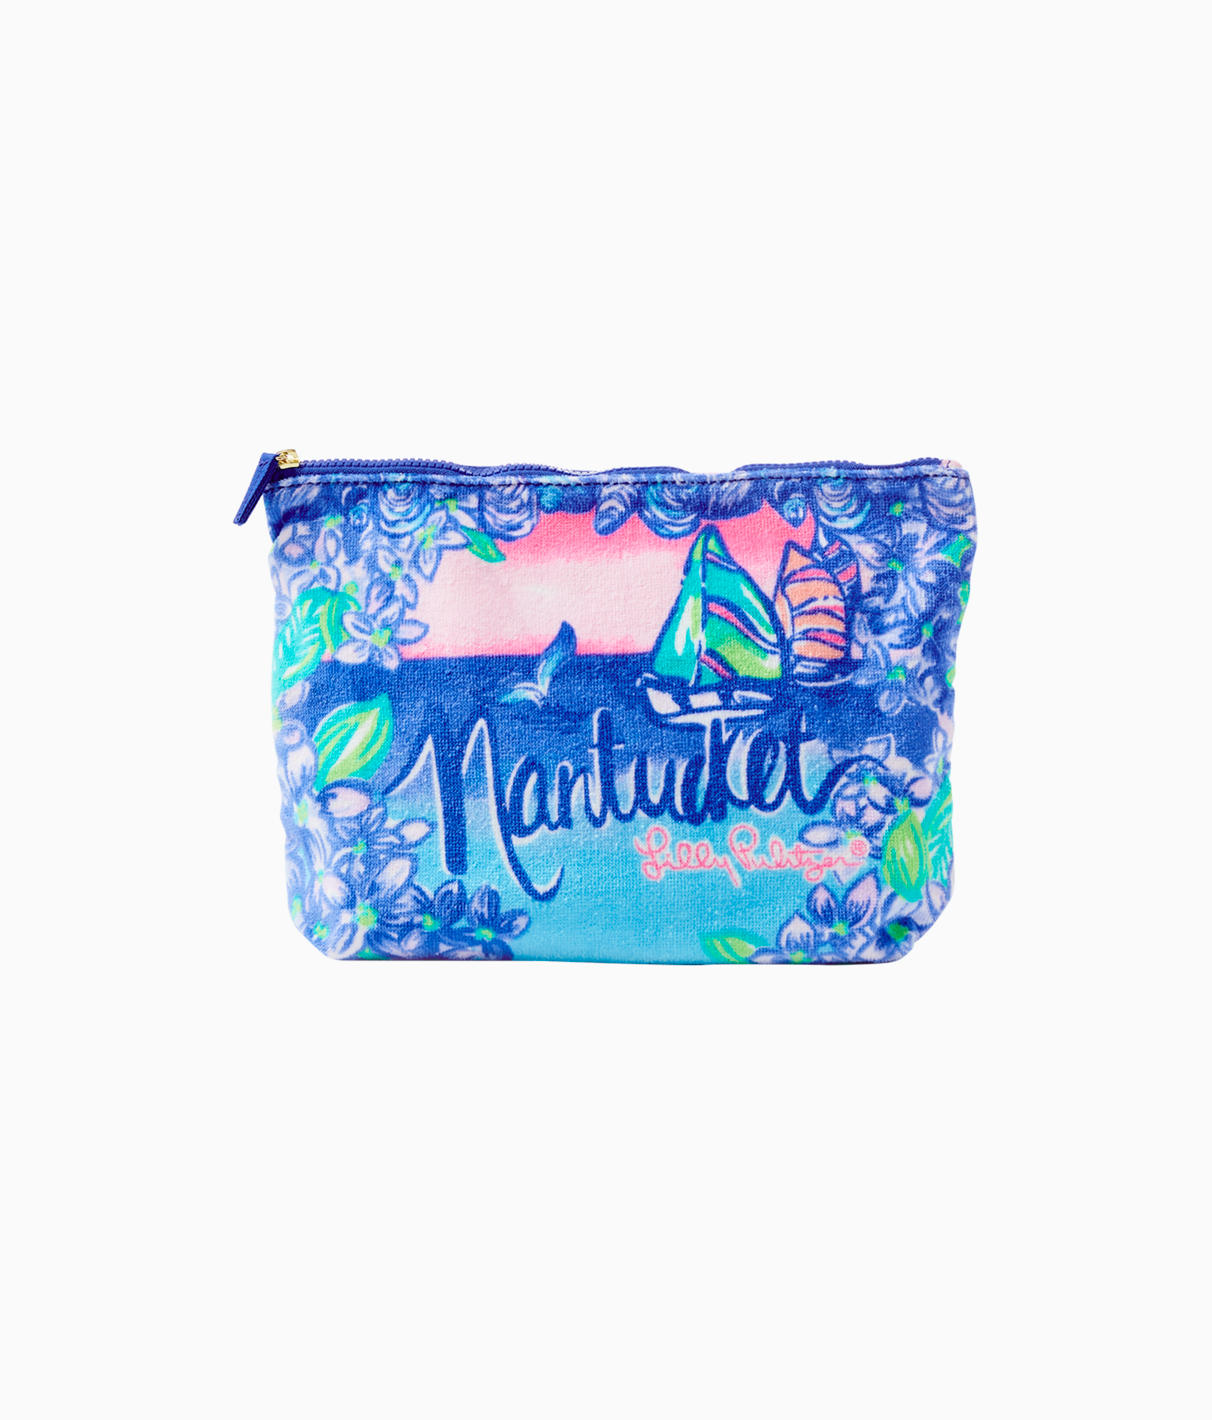 Lilly Pulitzer Lilly Pulitzer Destination Pouch